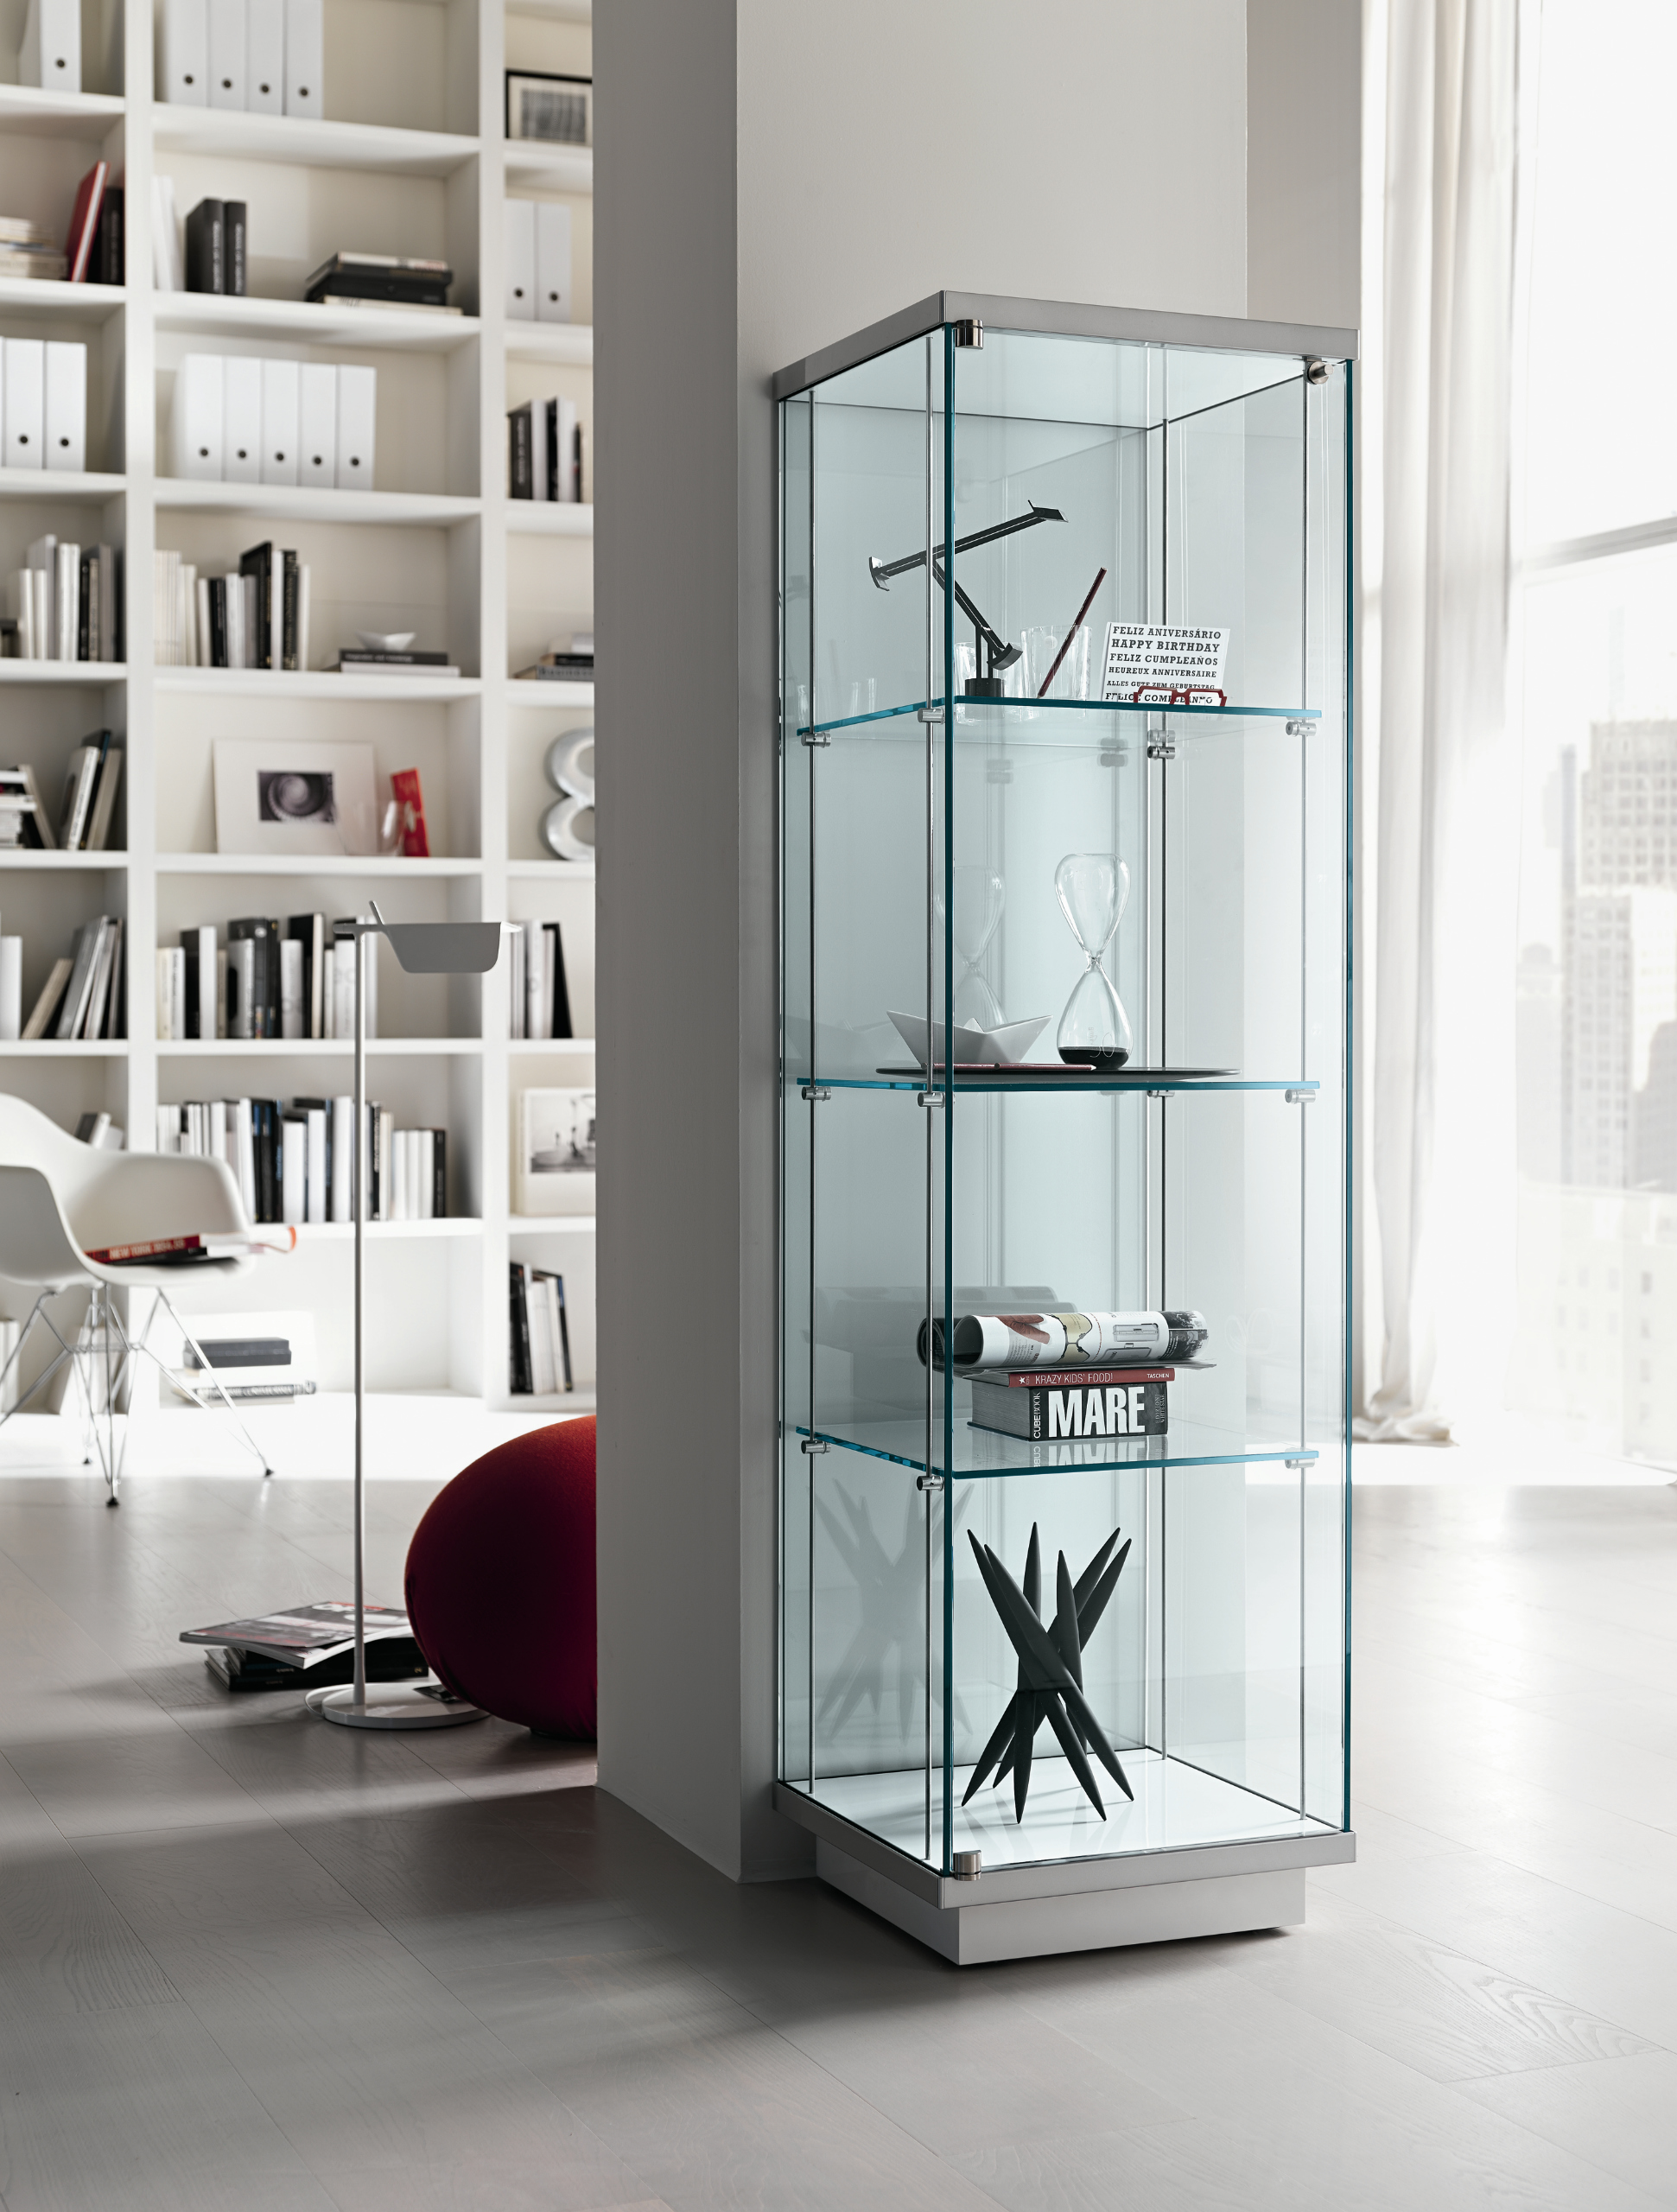 glasschr nke vitrinen ideen ideen top. Black Bedroom Furniture Sets. Home Design Ideas